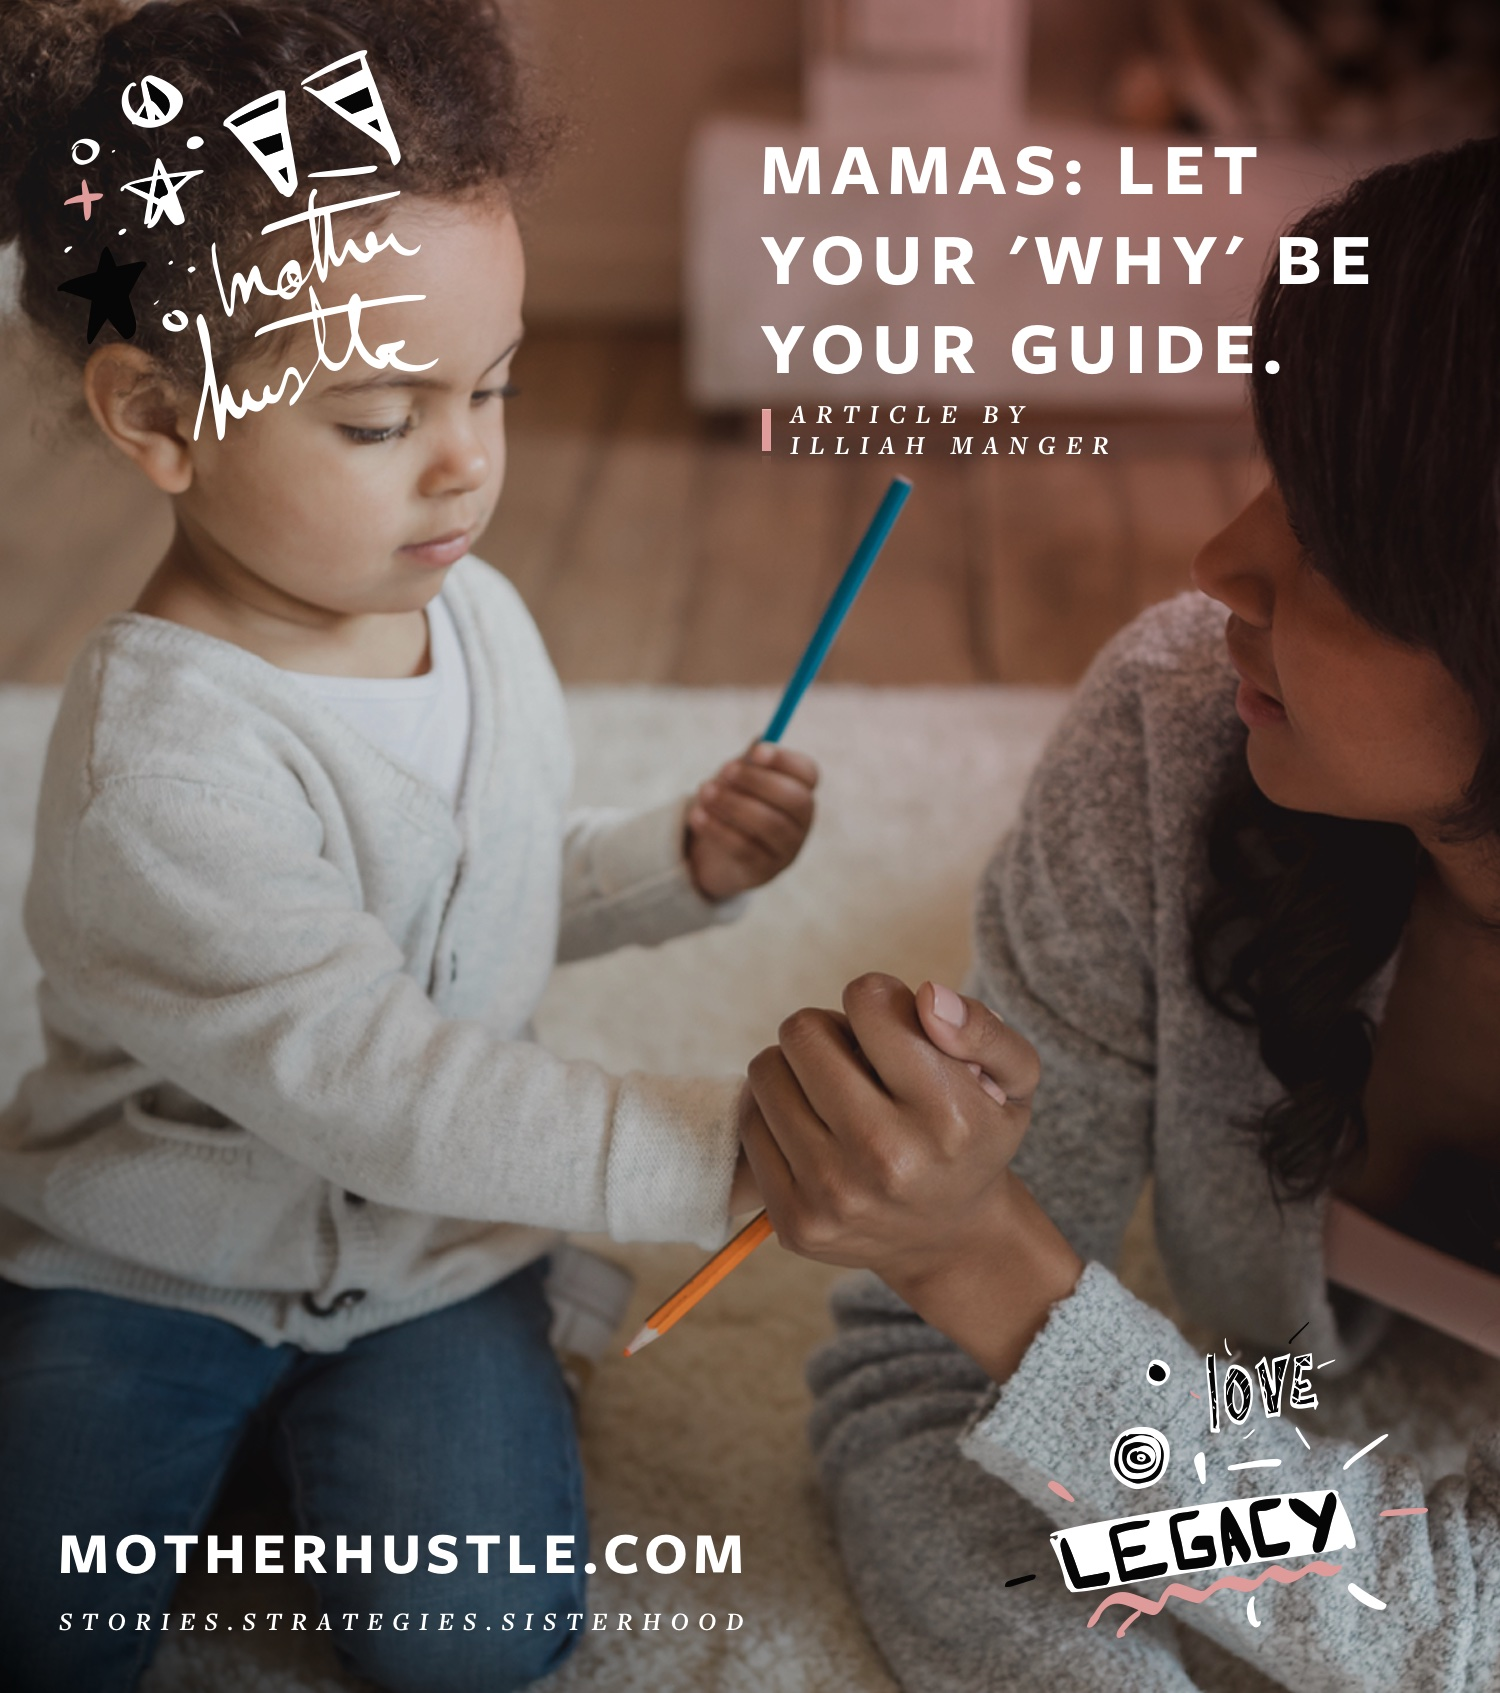 Mamas- Let Your 'WHY' Be Your Guide - by Illiah Manger for MotherHustle